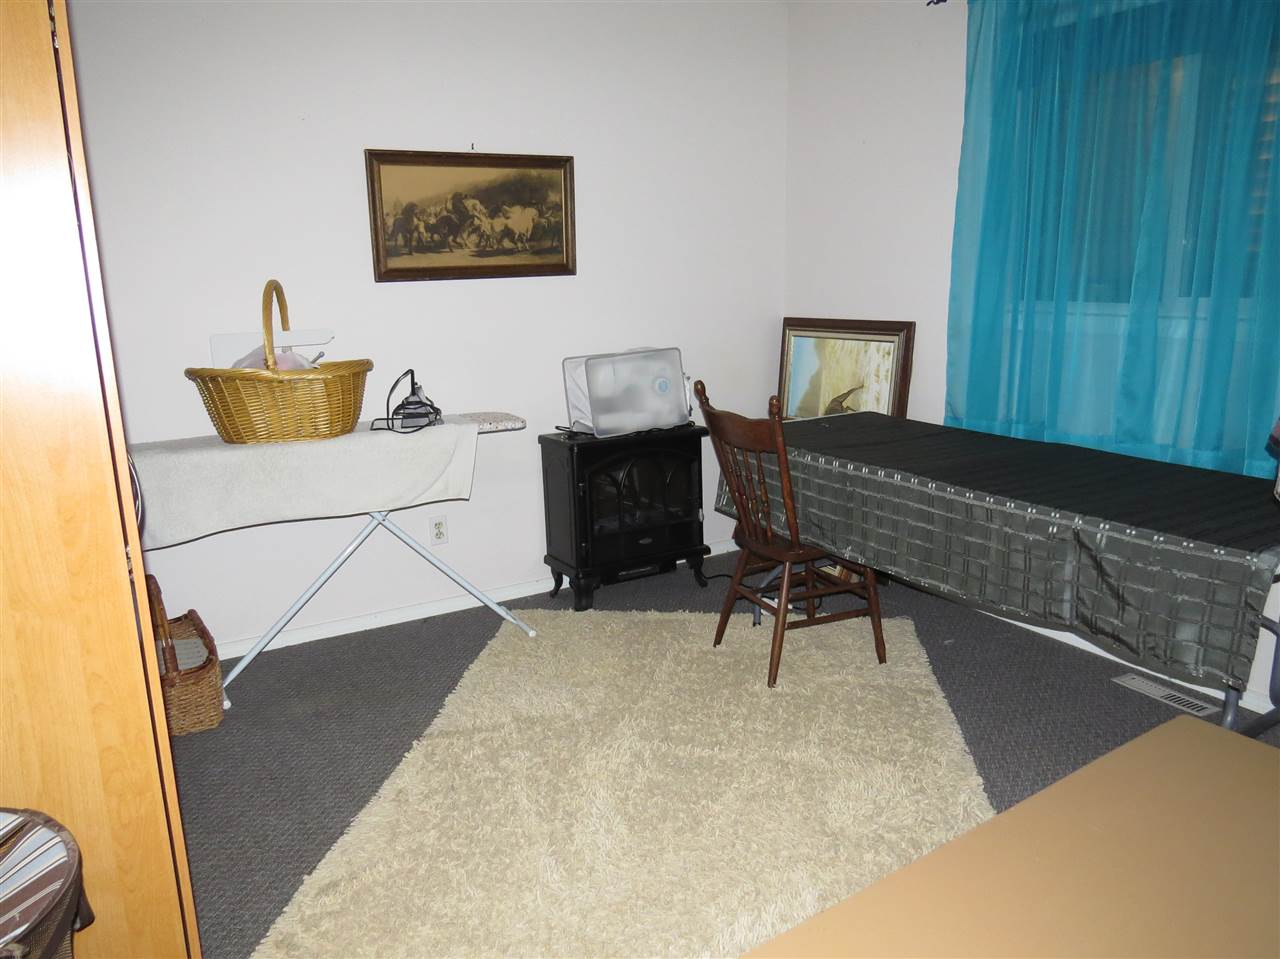 Photo 16: 14 RR 101 Twp 430A: Rural Flagstaff County House for sale : MLS® # E4049046